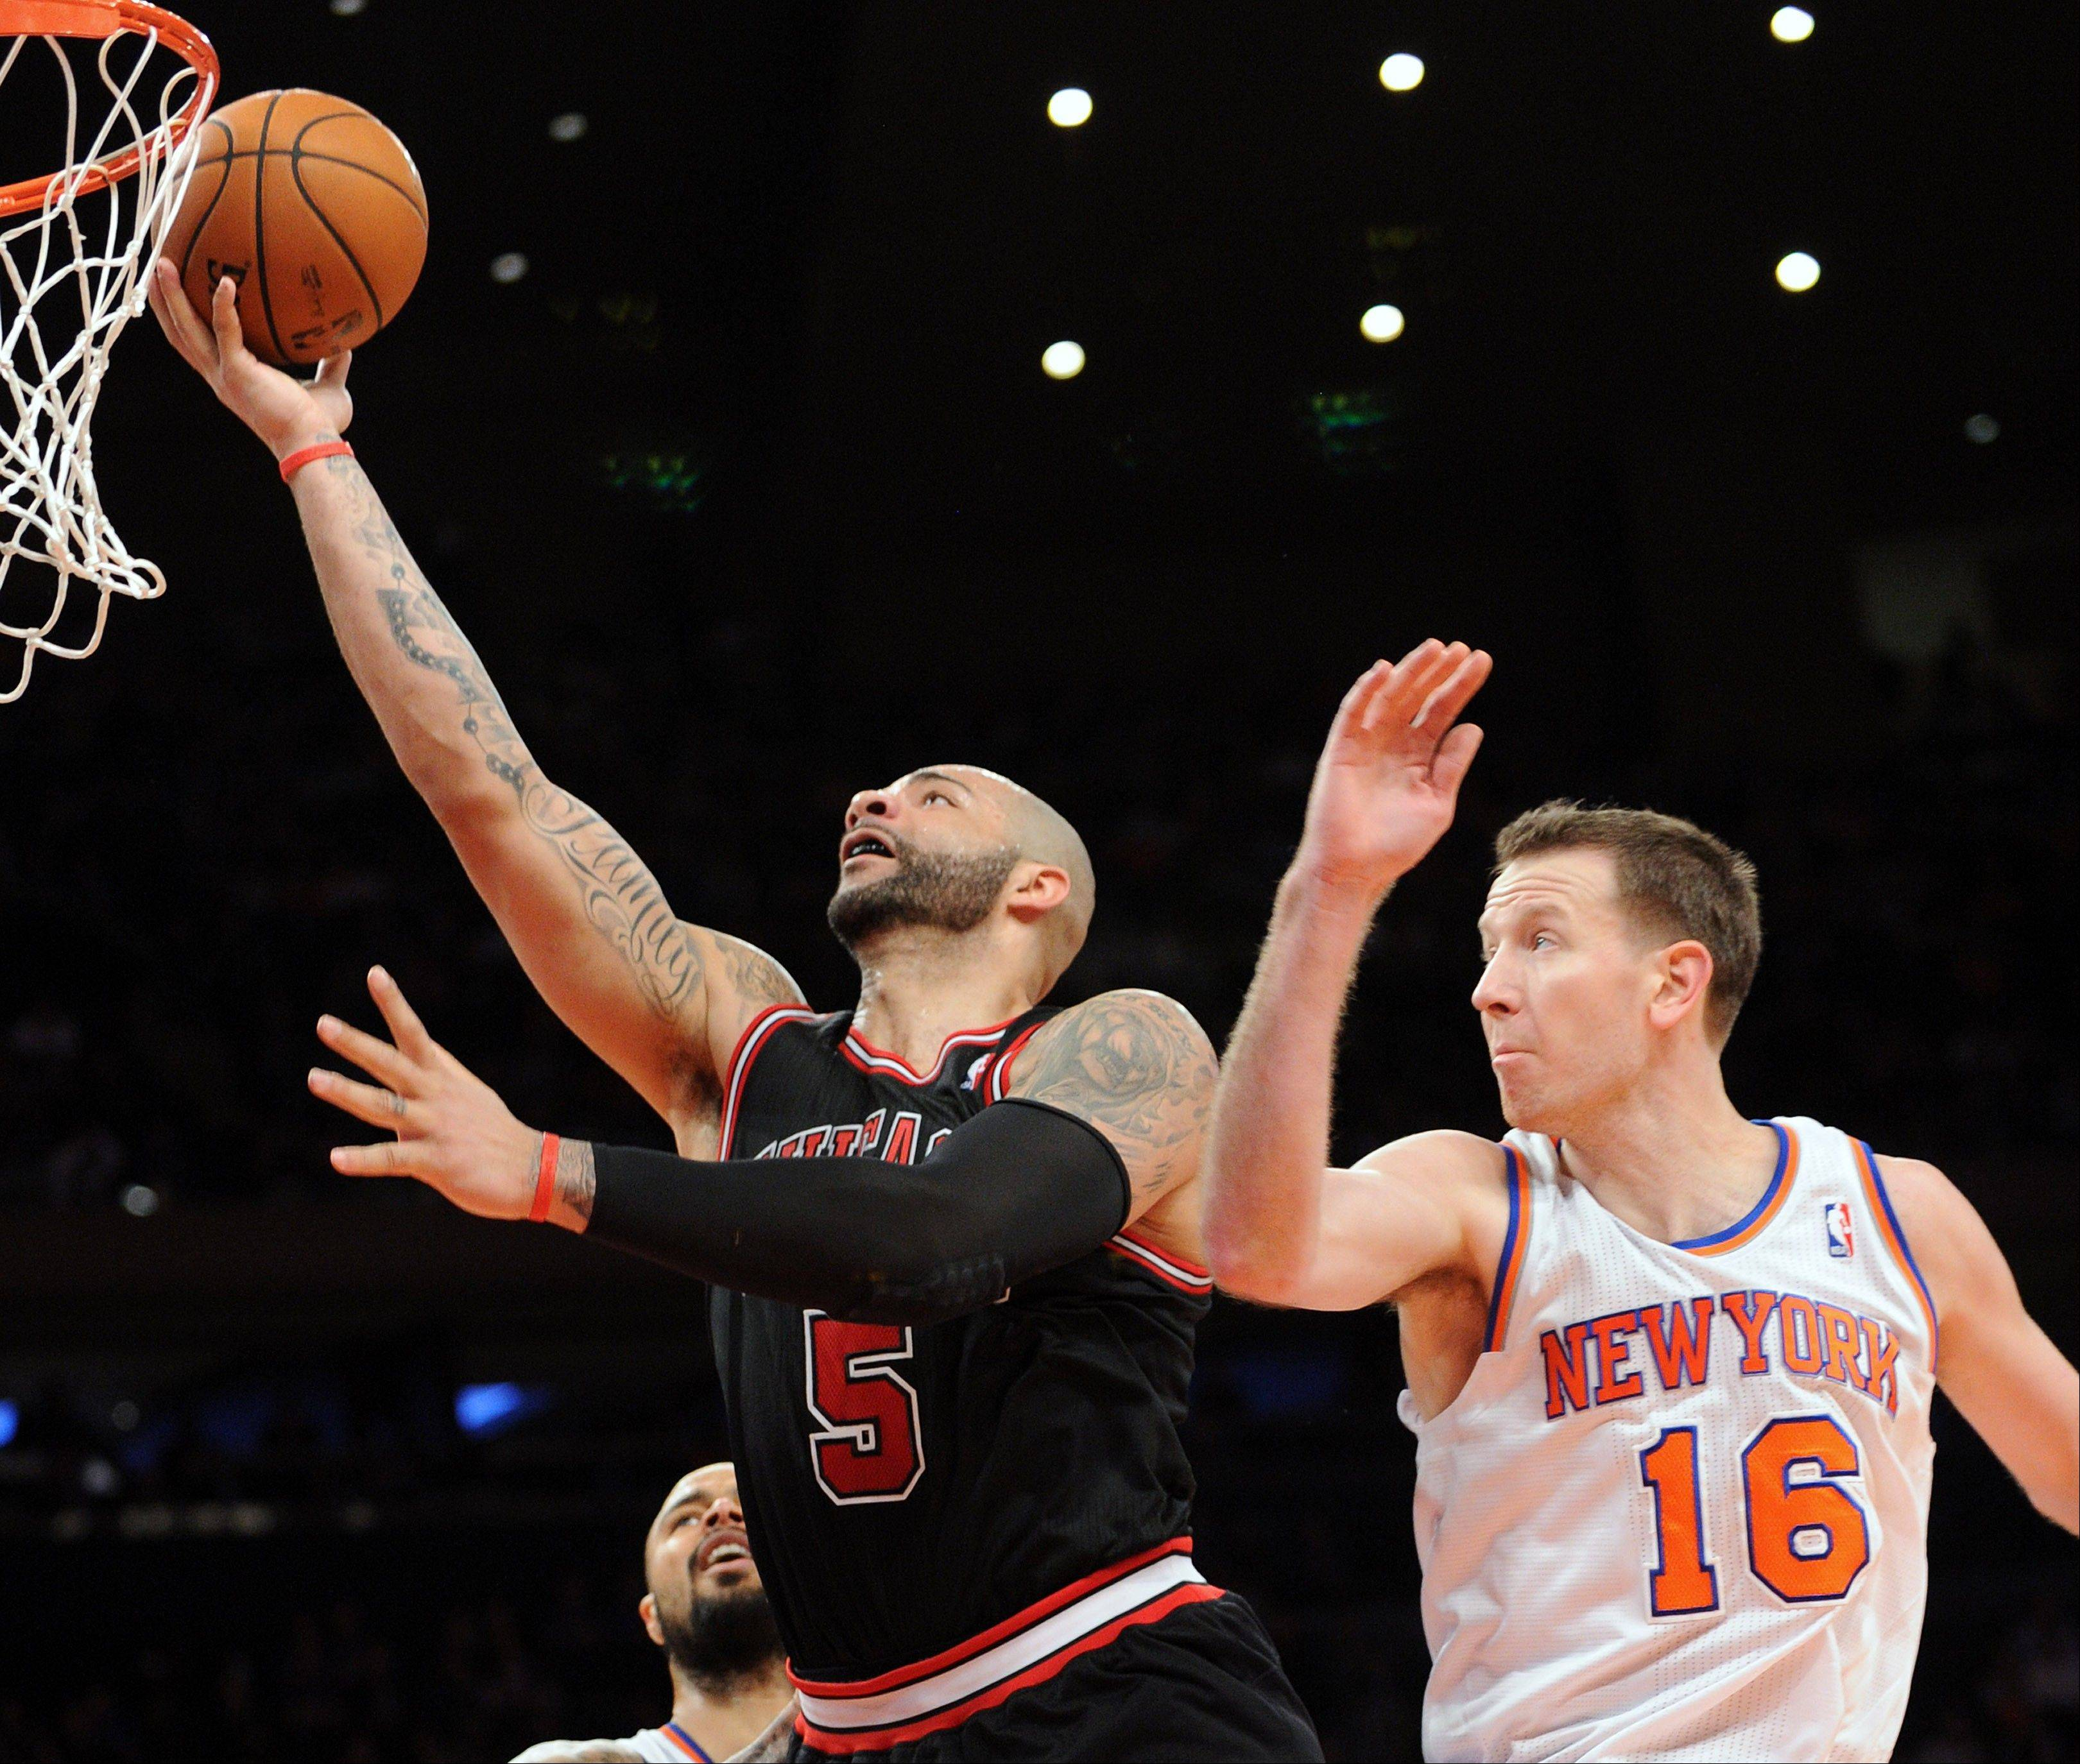 Carlos Boozer is bolstering his all-star credentials in January as the Bulls' power forward has hit 56 percent of his field goals and averaged 24 points per game.